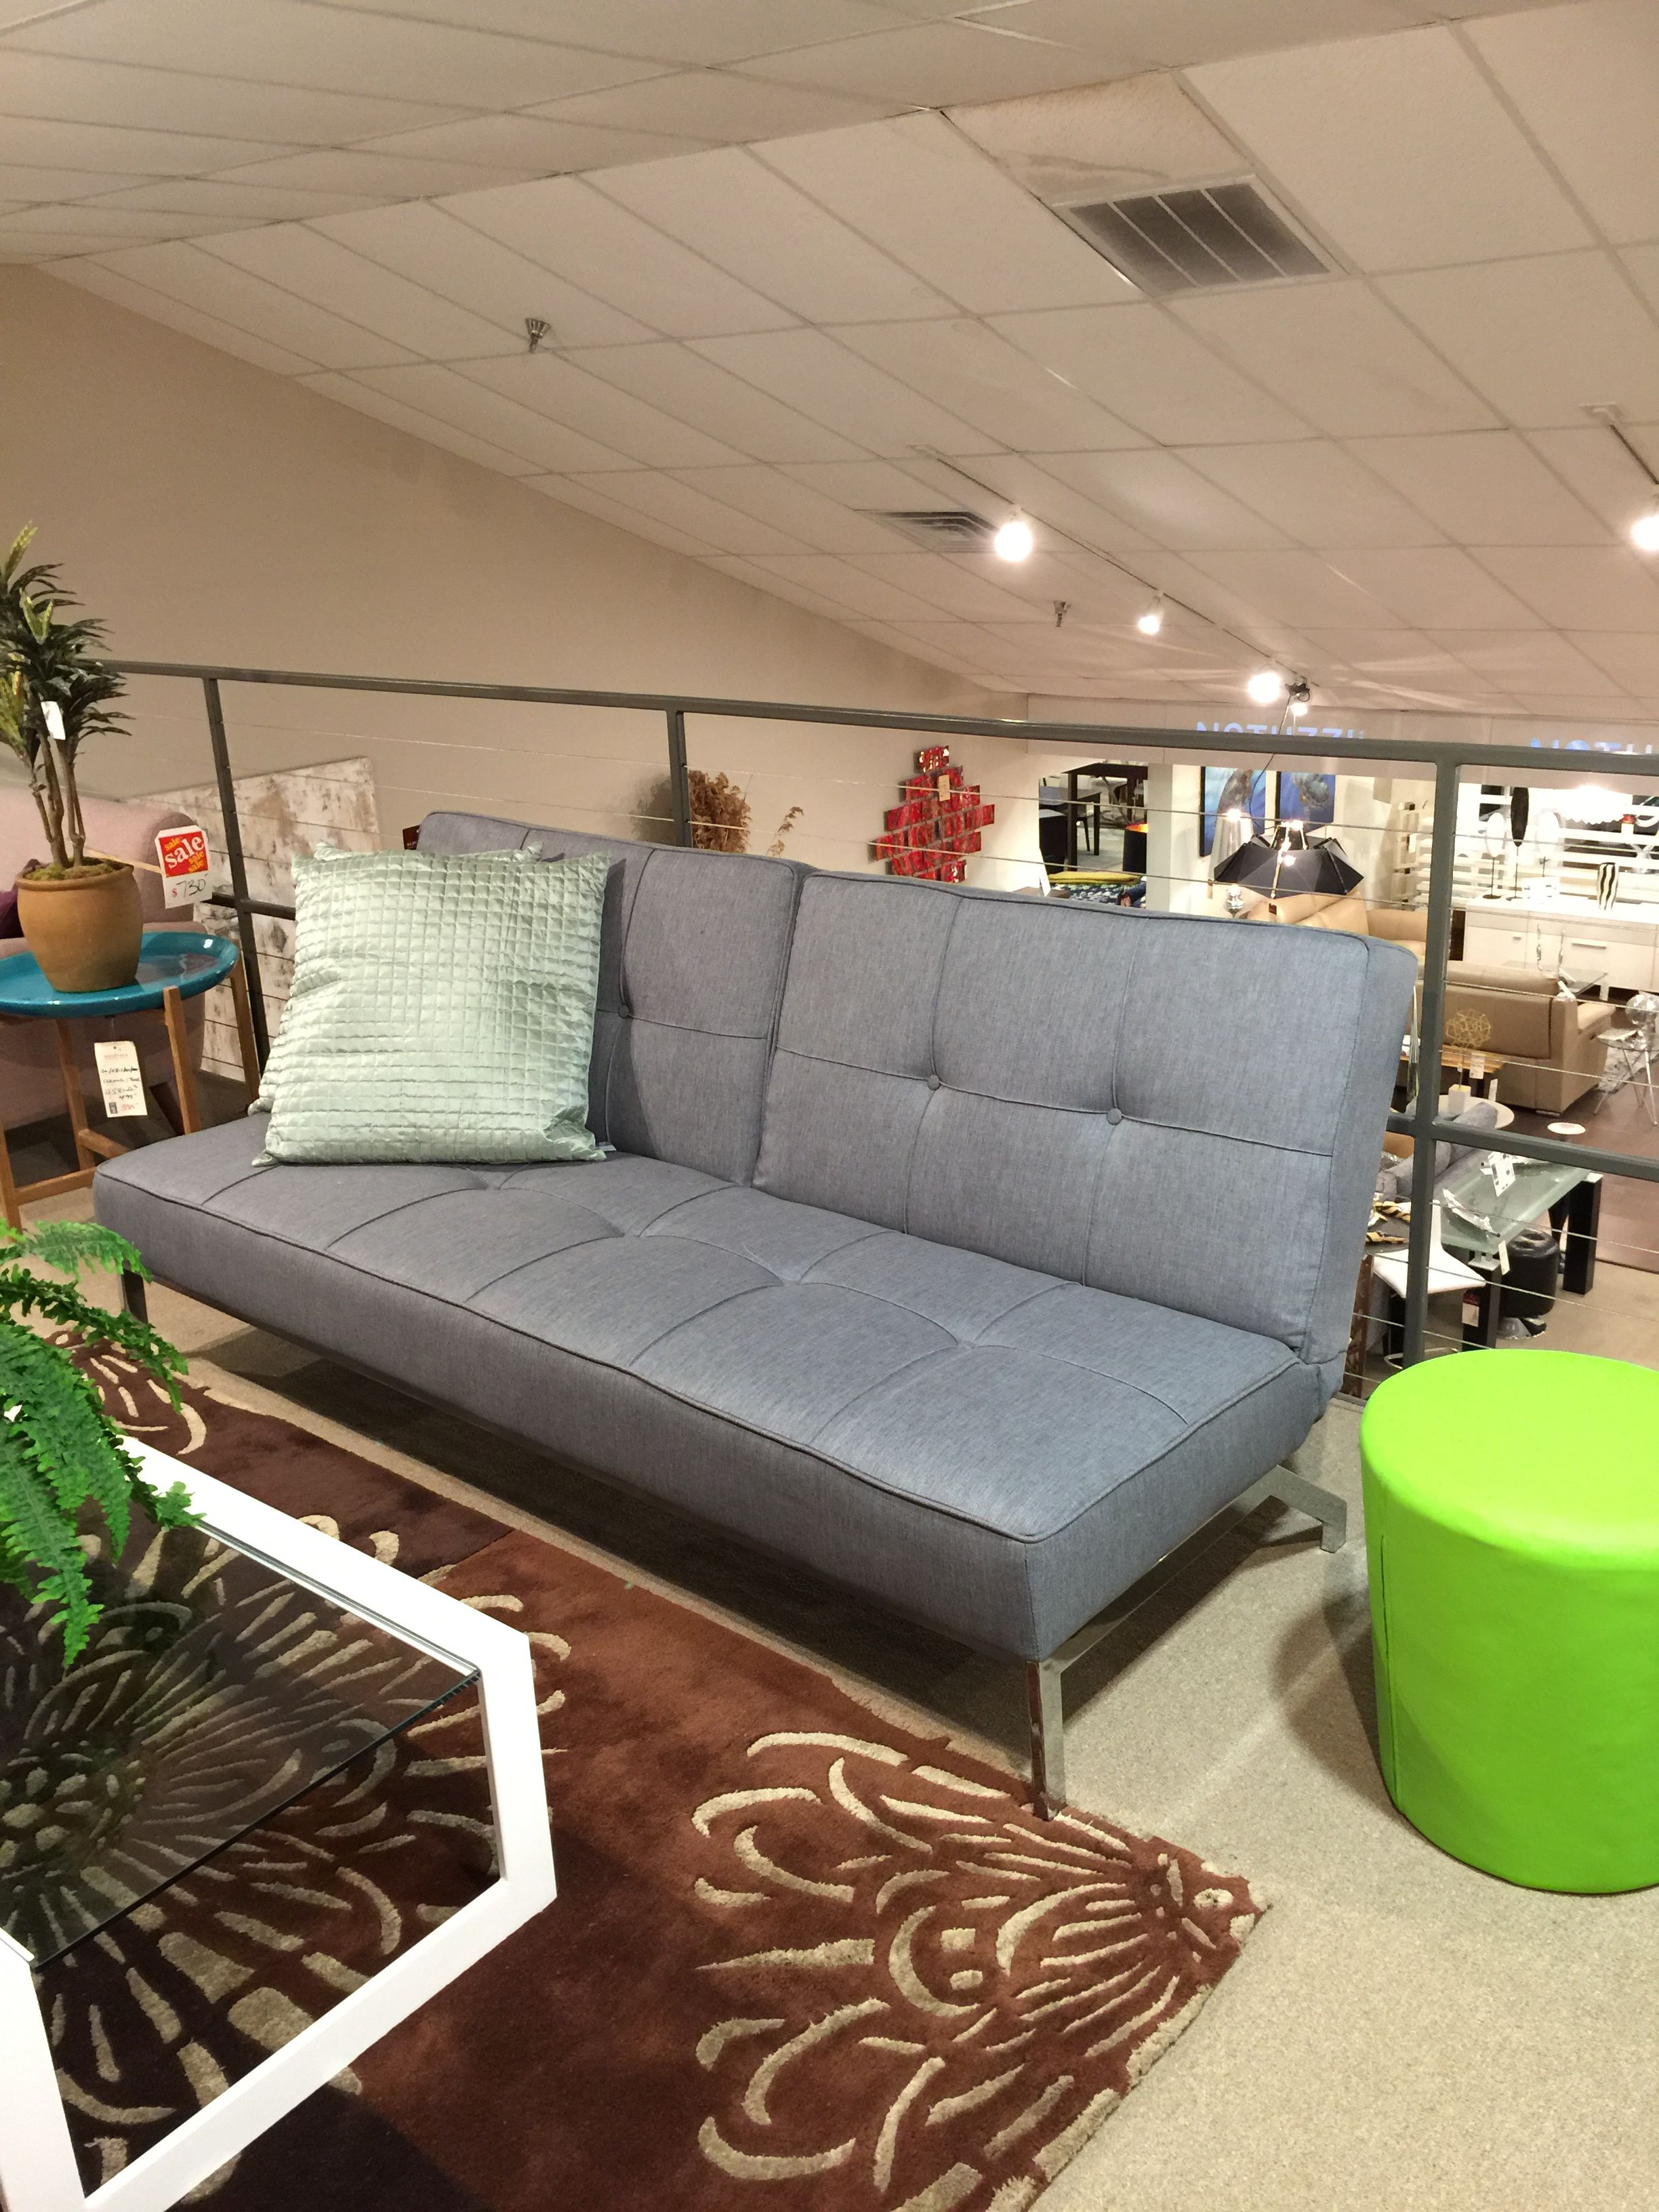 Actona Perugia Futon Grey Fabric Scandinavia Inc Metairie New Orleans Louisiana Contemporary Modern Furniture